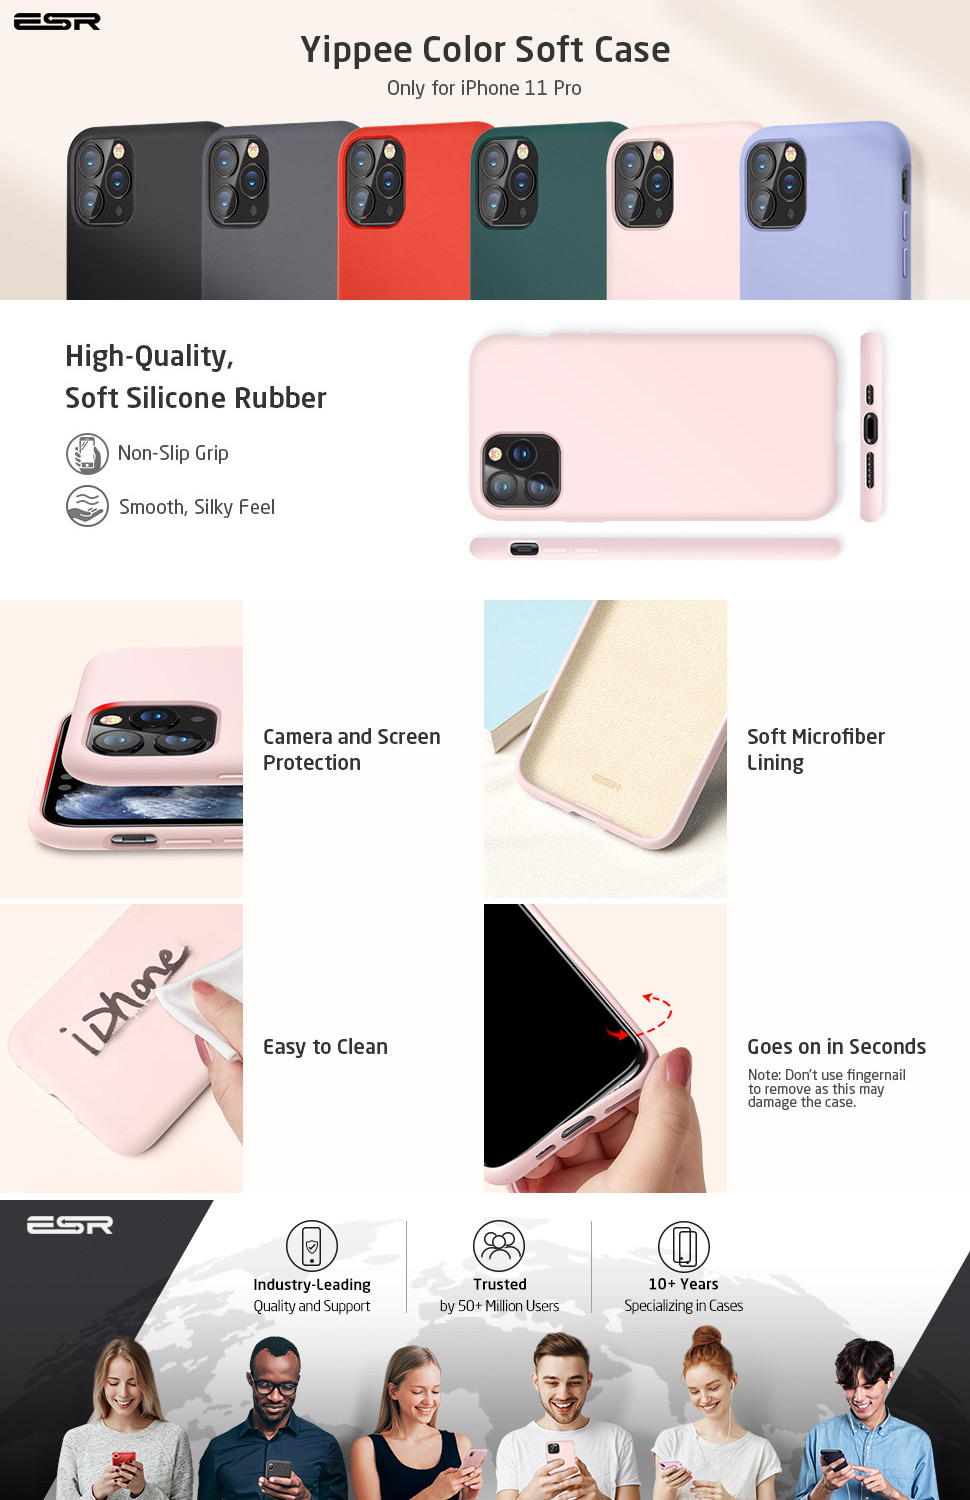 ESR Yippee Color case for iPhone 11 Pro, Gohub Shop